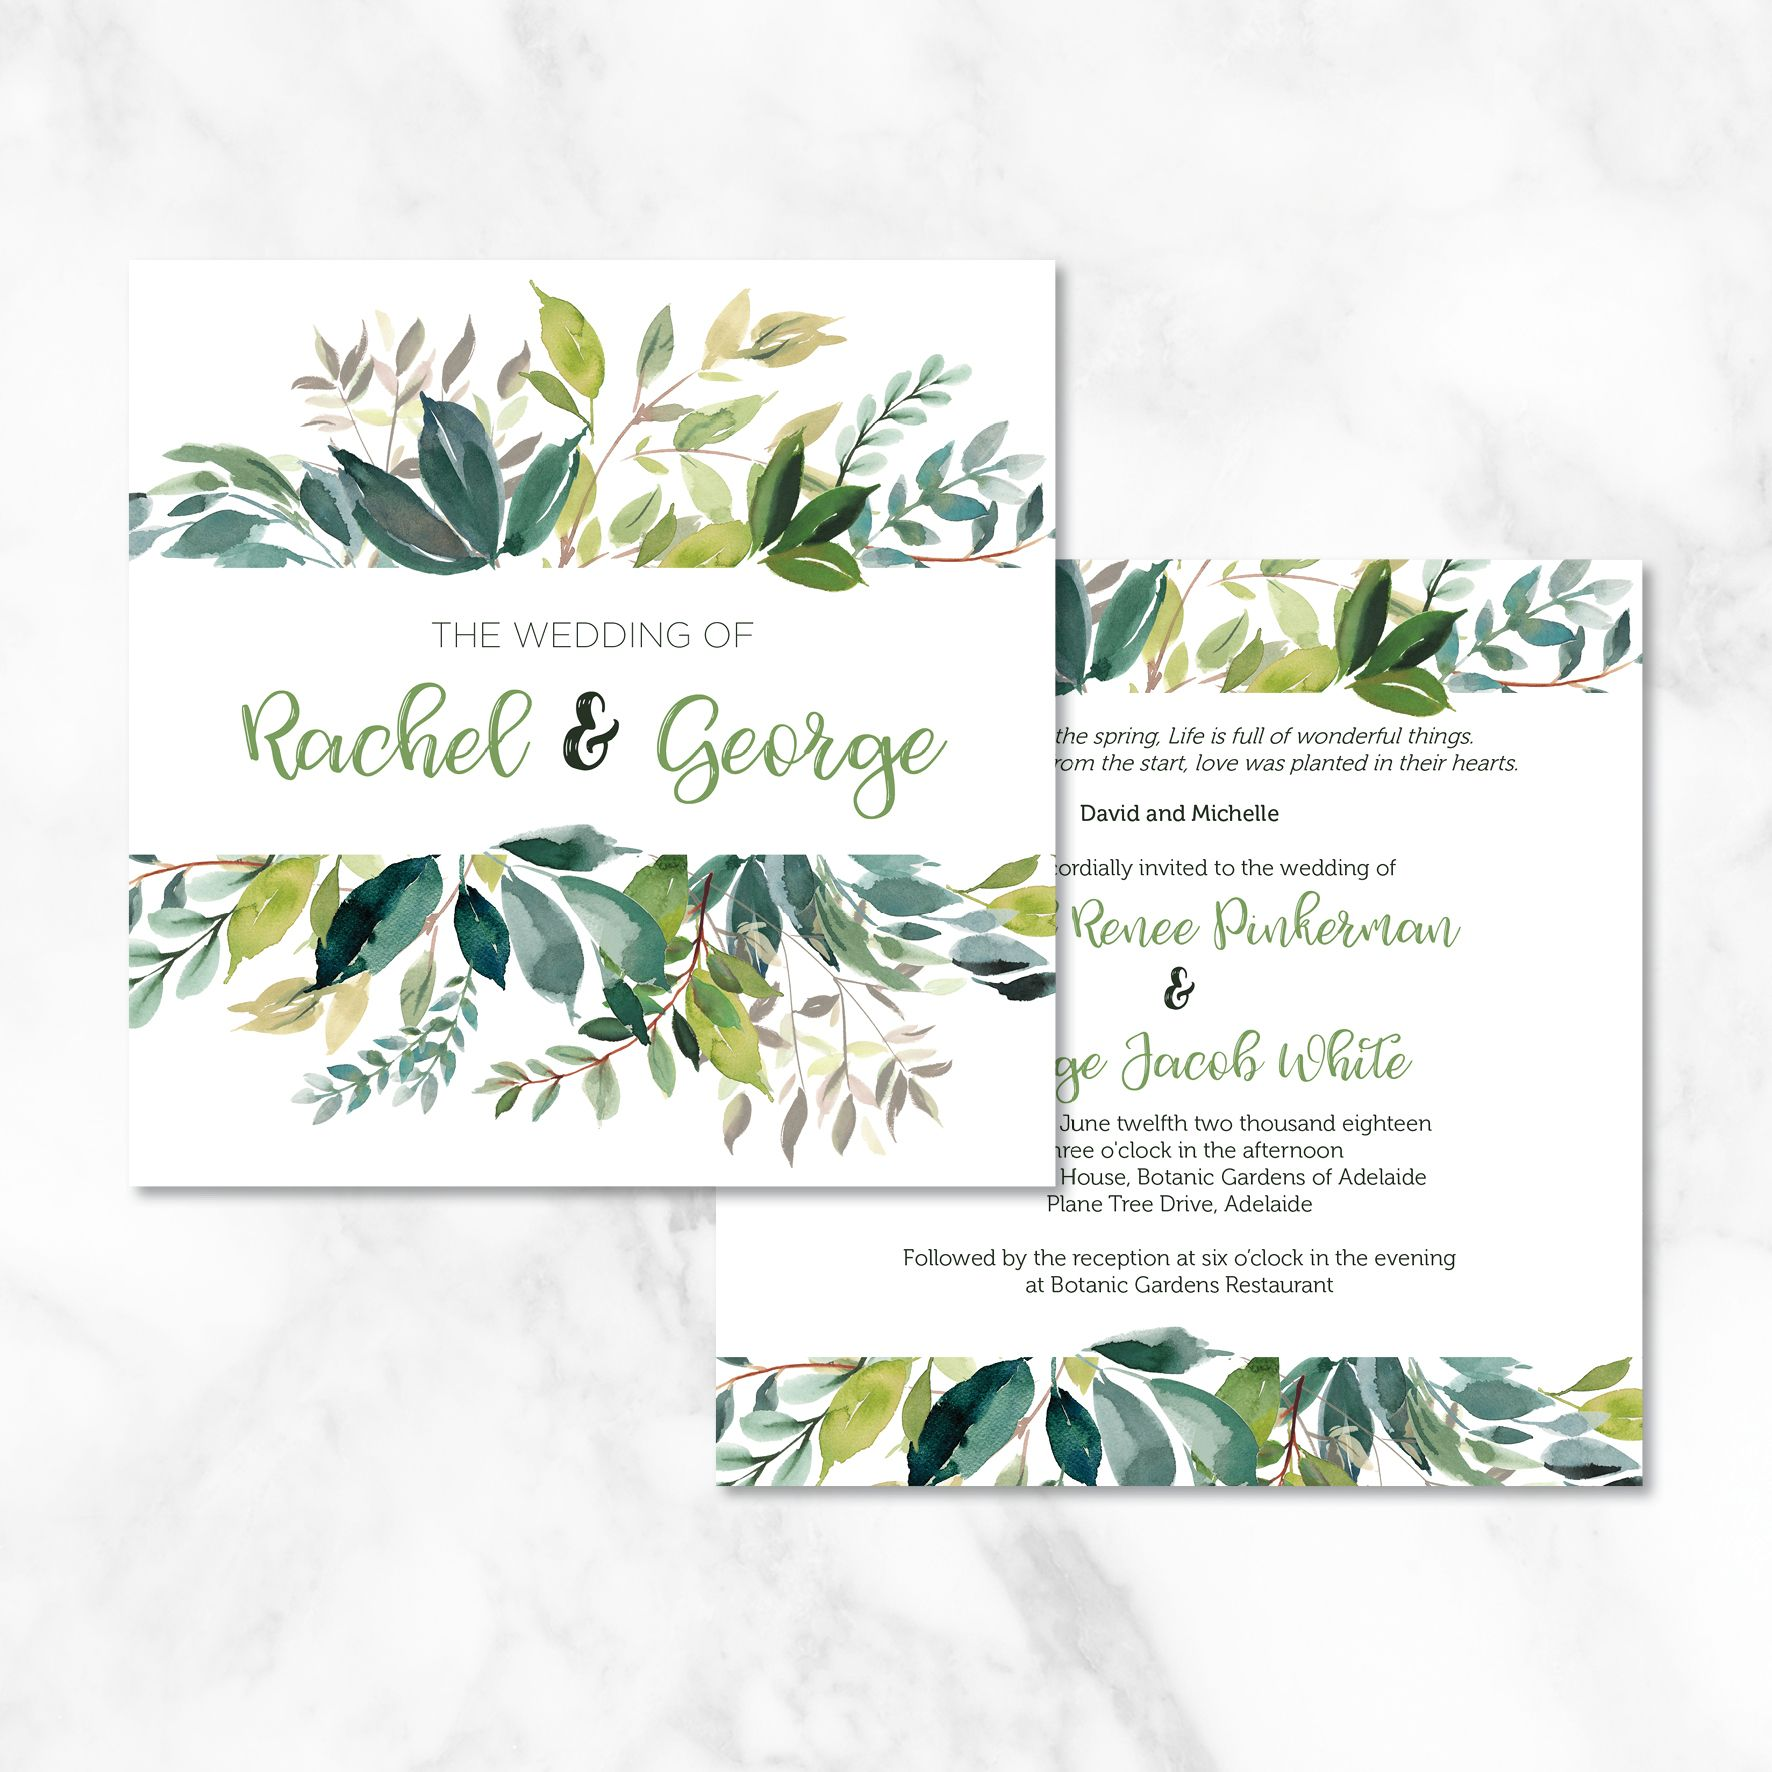 Watercolour Leaves Wedding Invitation These Beautiful Watercolour Wedding Invitations Featur Wedding Invitations Watercolor Wedding Invitations Wedding Cards